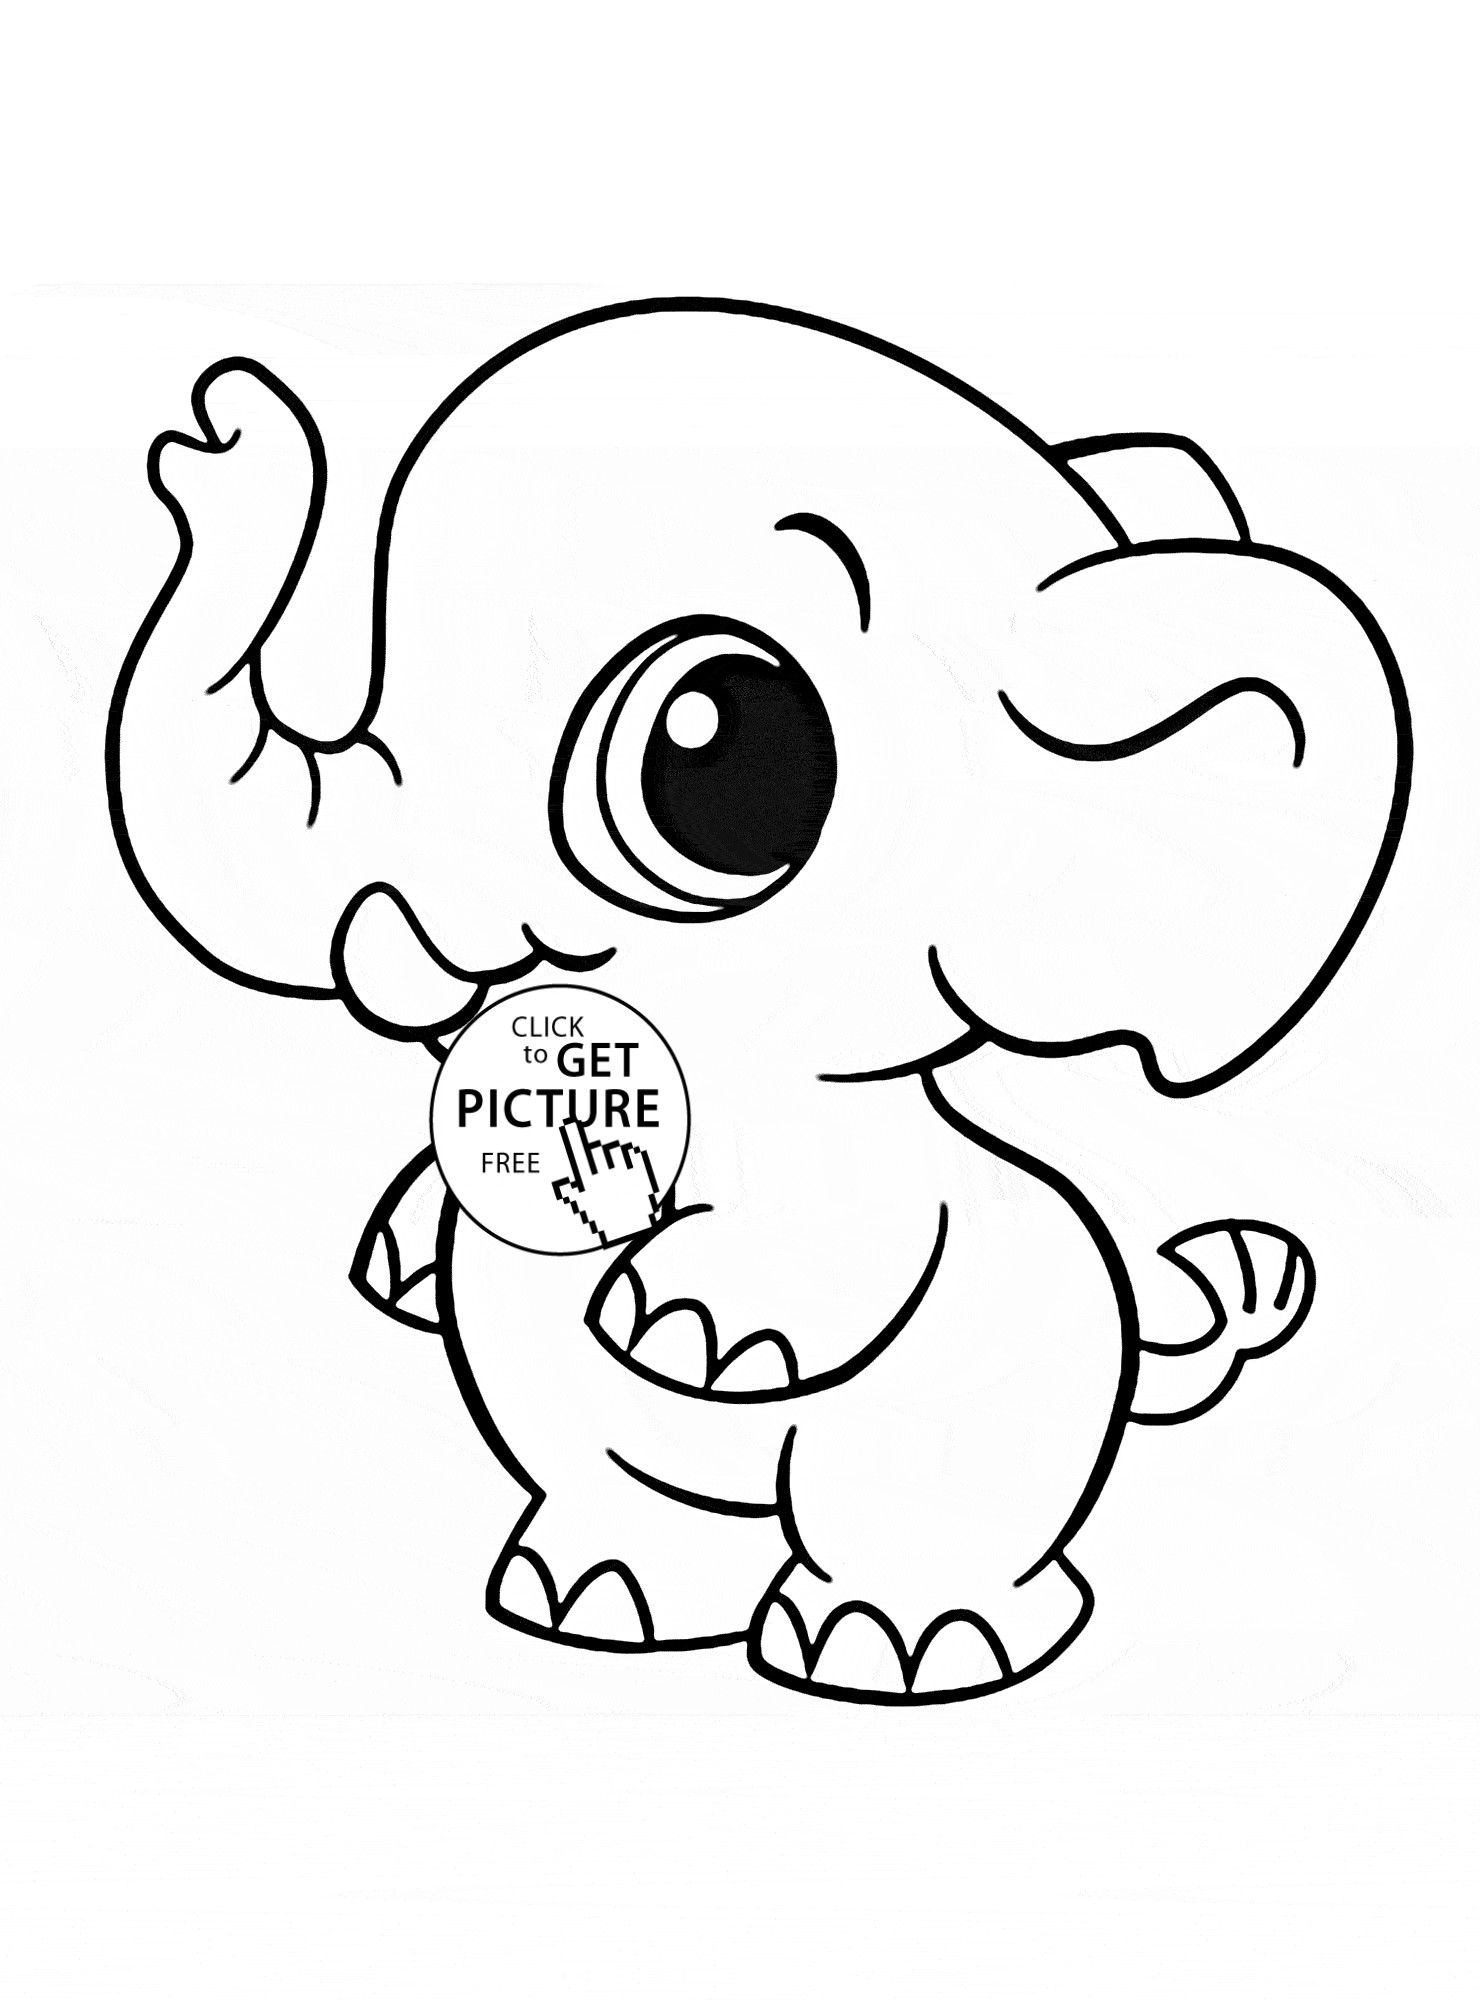 Cute coloring pages of animals from the thousand photographs online with regards to cute coloring pages of animals we all choices the best choices using